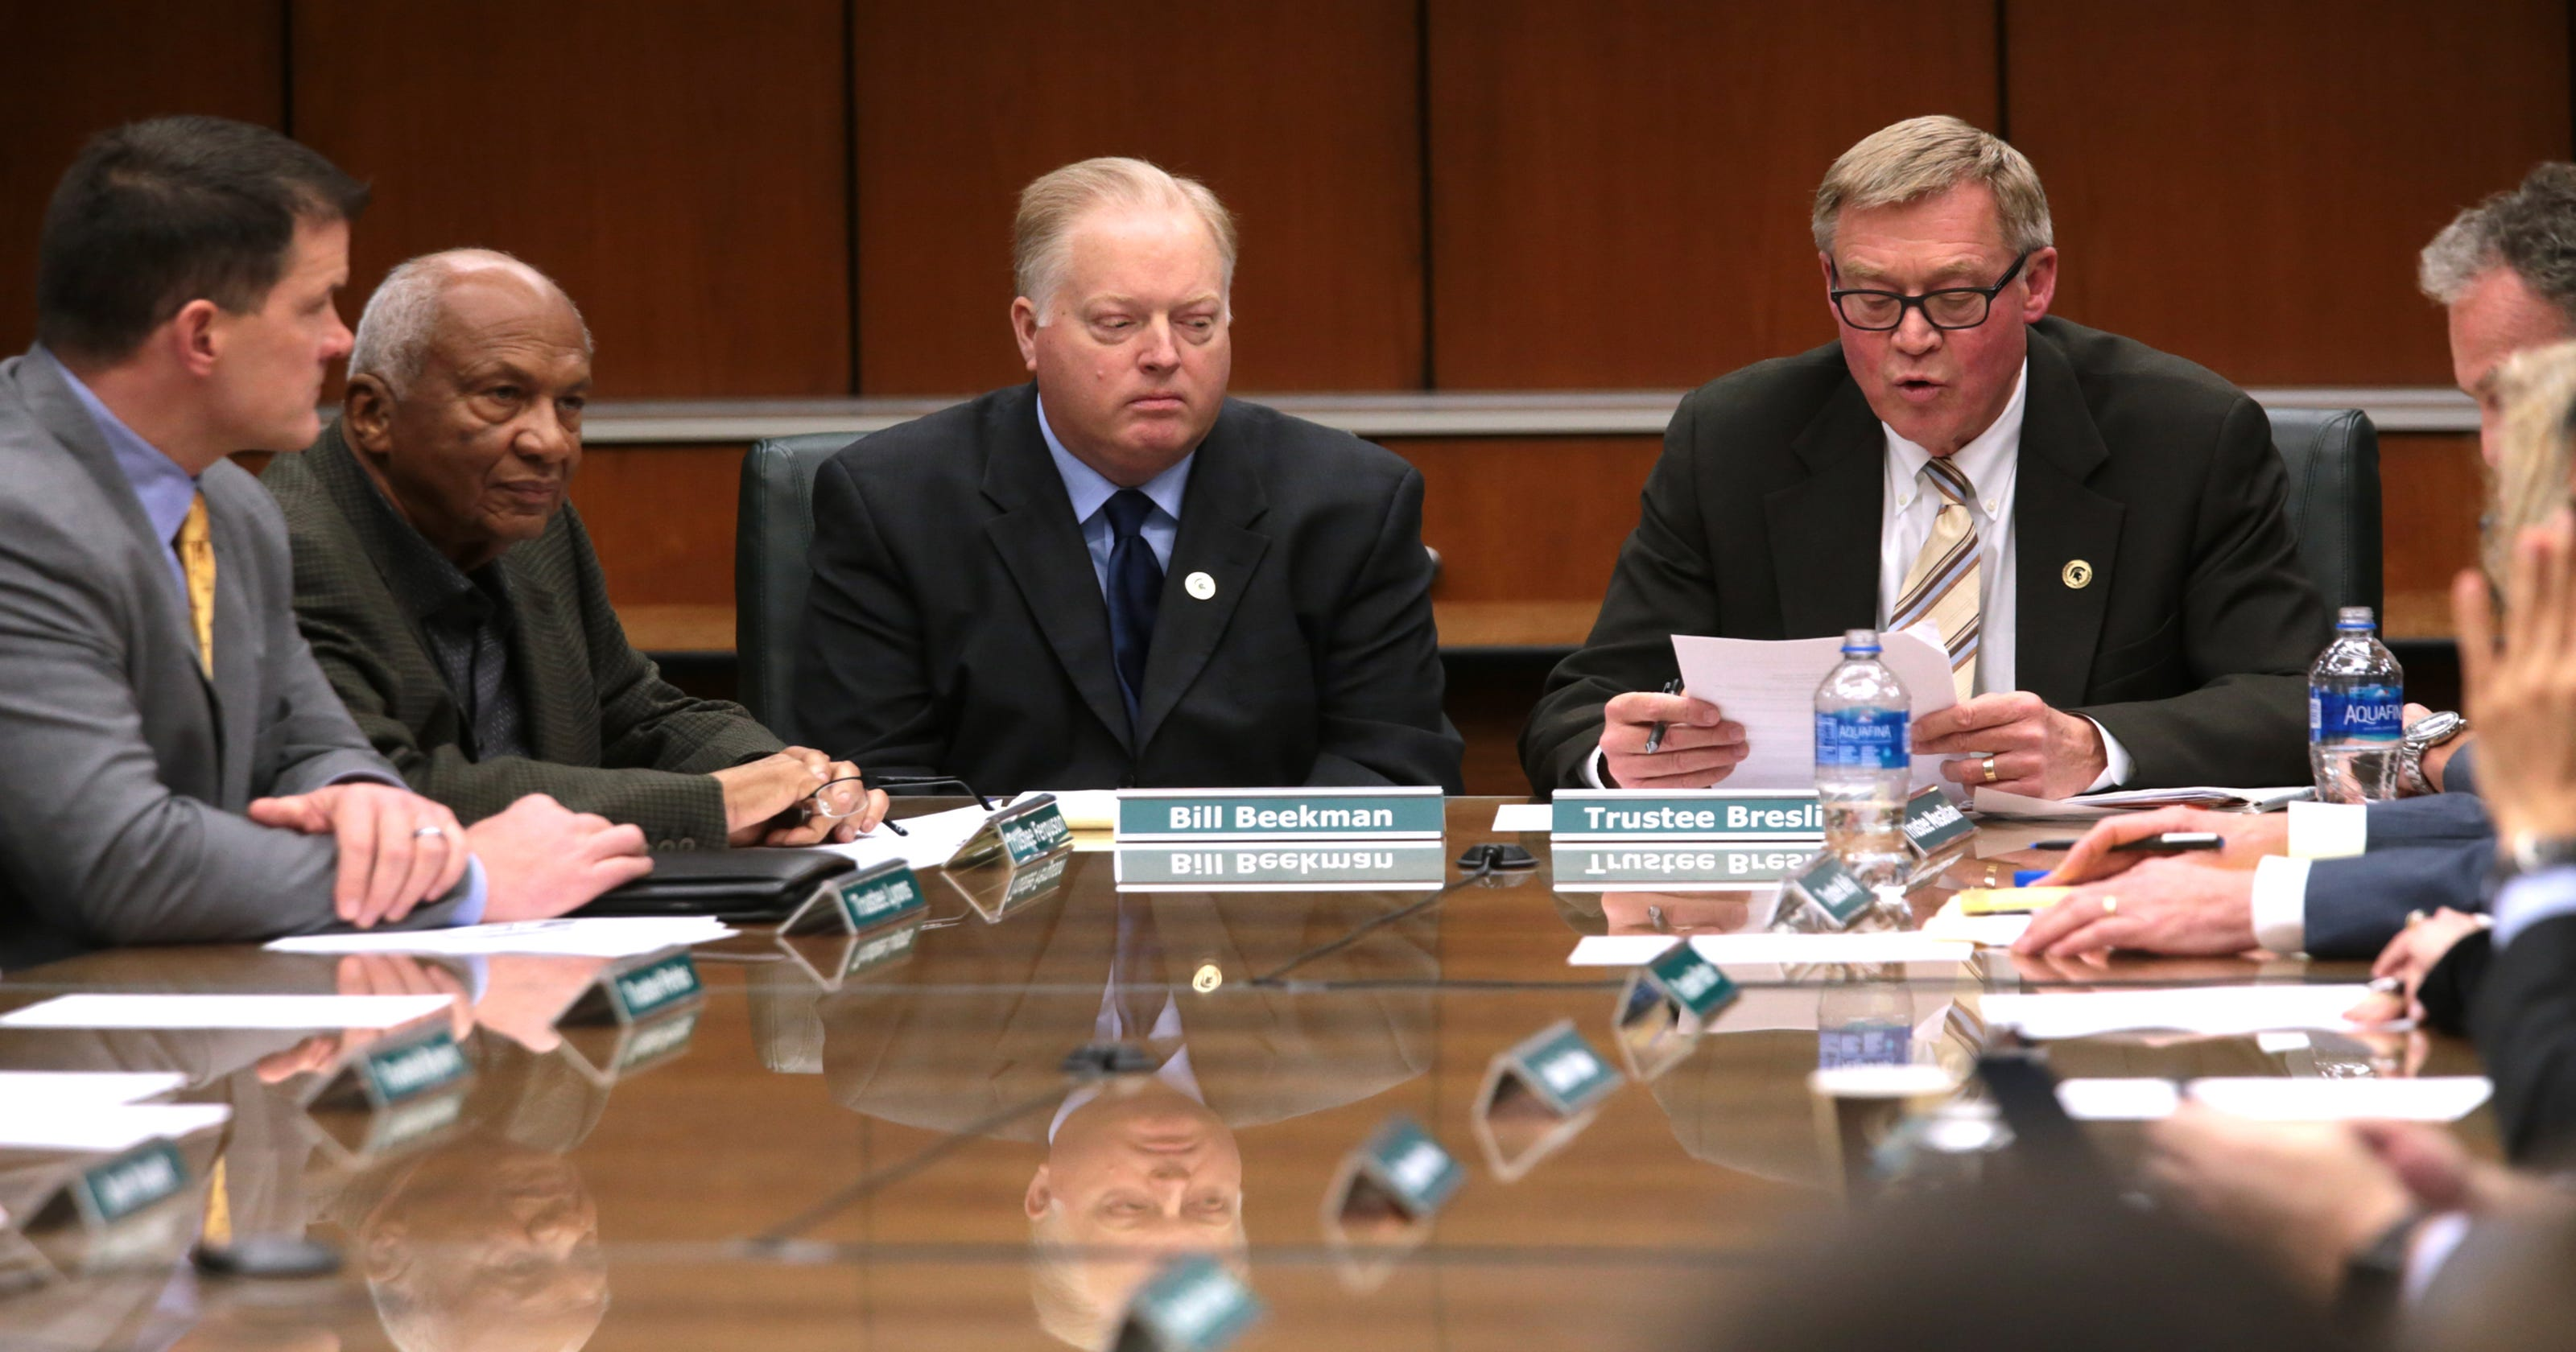 Michigan State trustees are frequent fliers on team trips